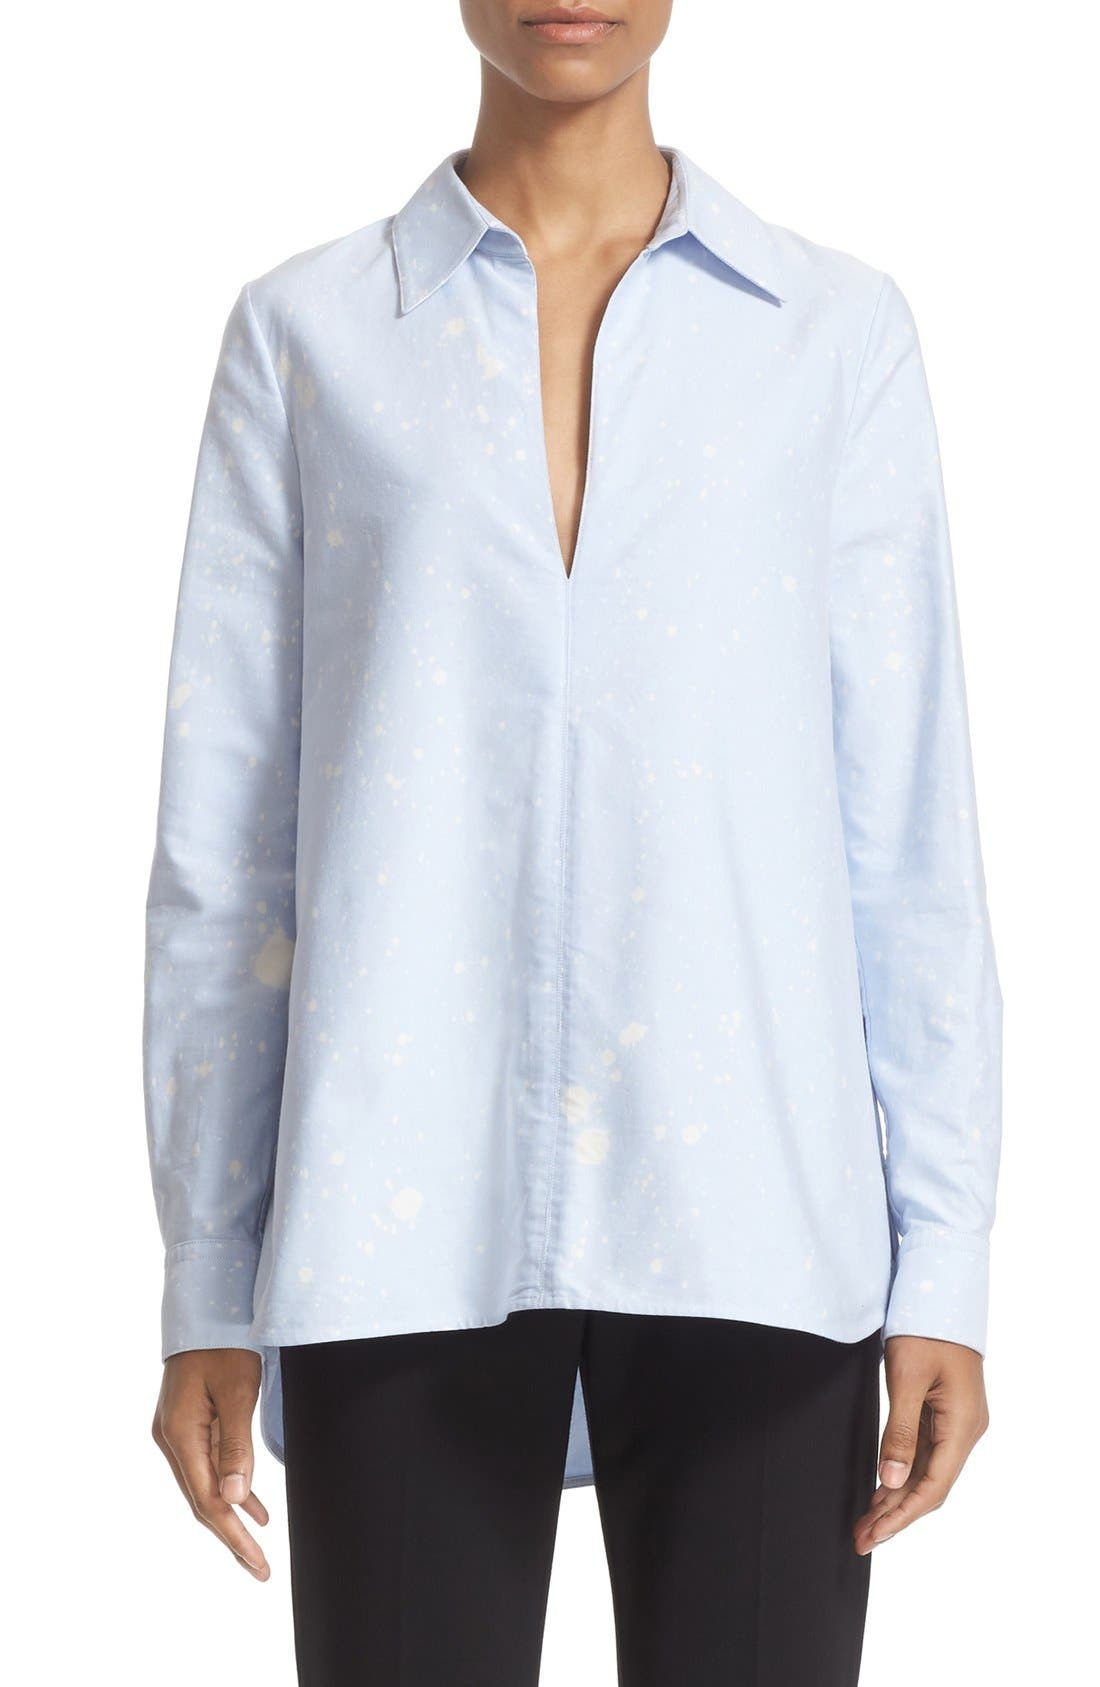 ALEXANDER WANG Bleach Splatter A-Line Tunic Top